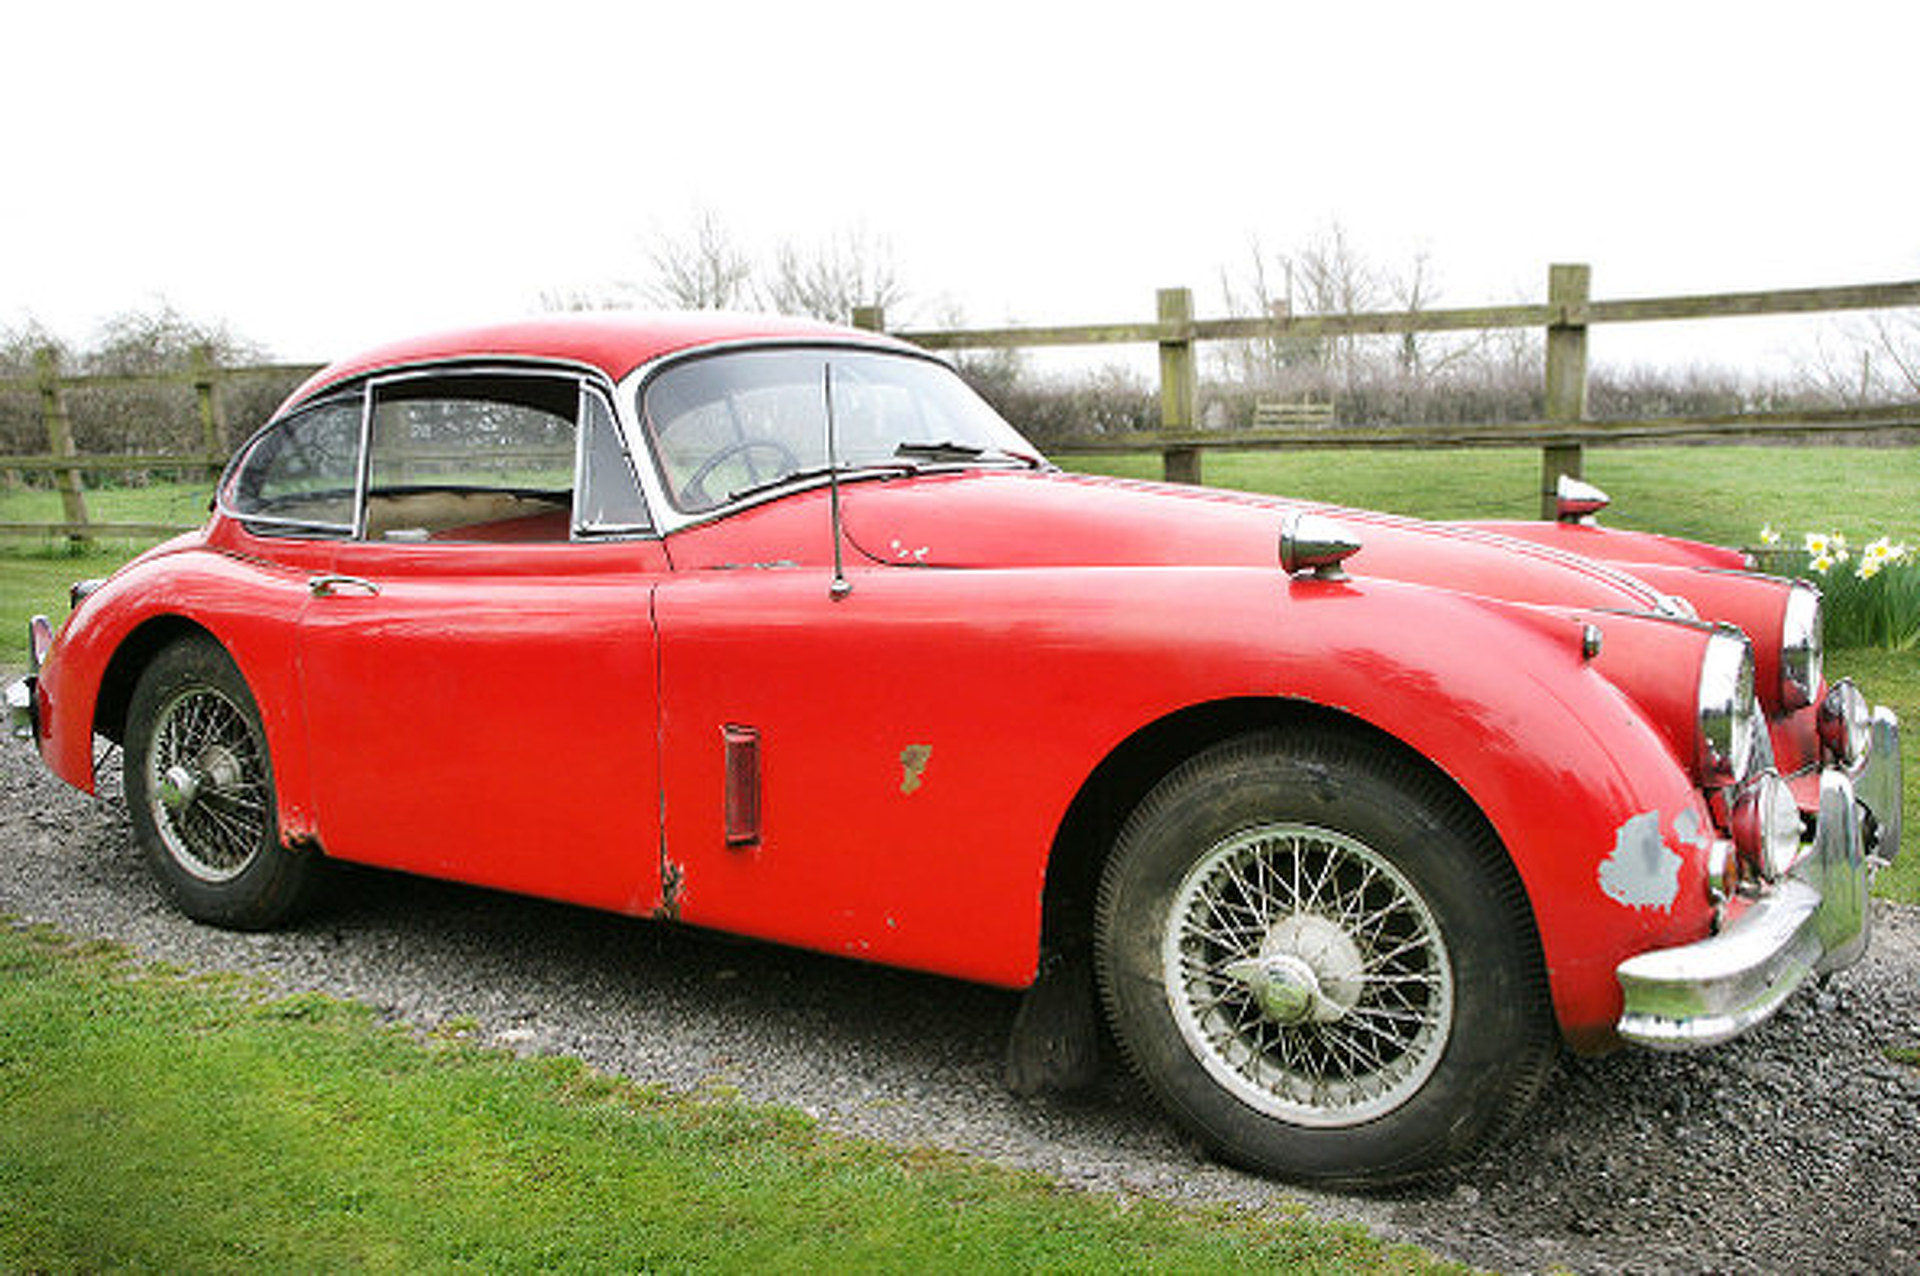 Duo of Stunning Jaguar XK150 Barn Finds up for Auction